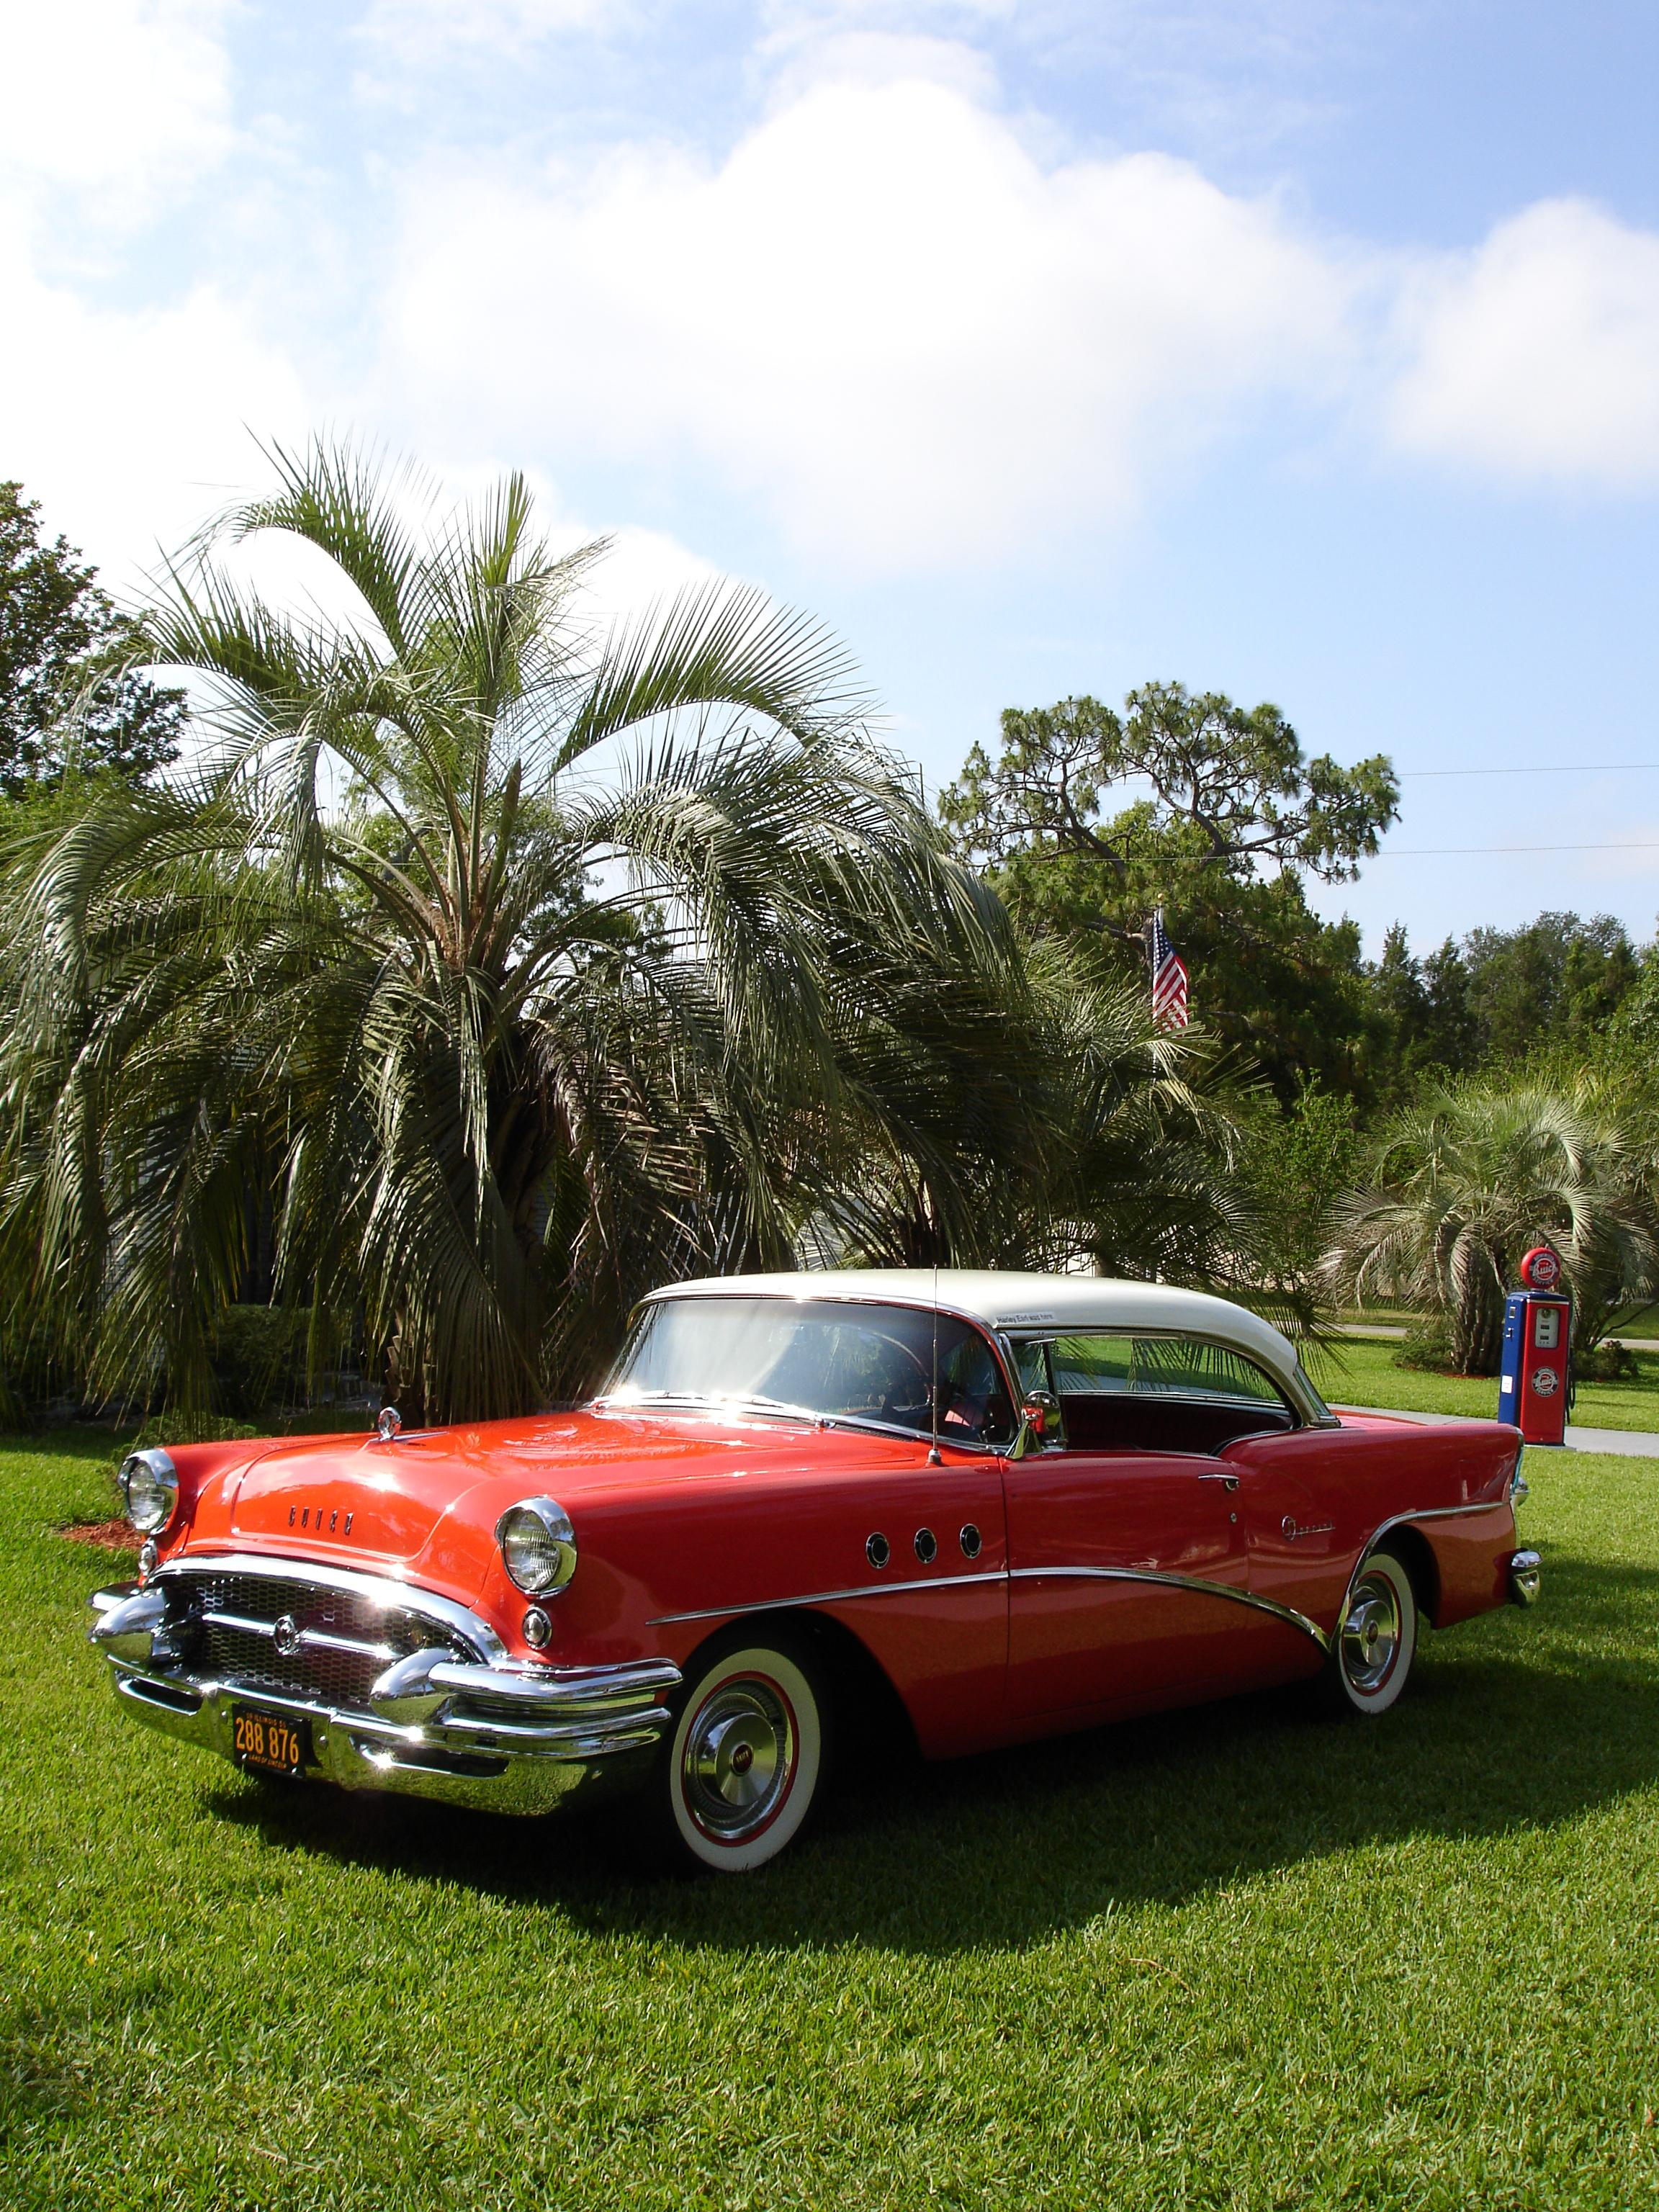 a55buickspecial 1955 Buick Special 14139926